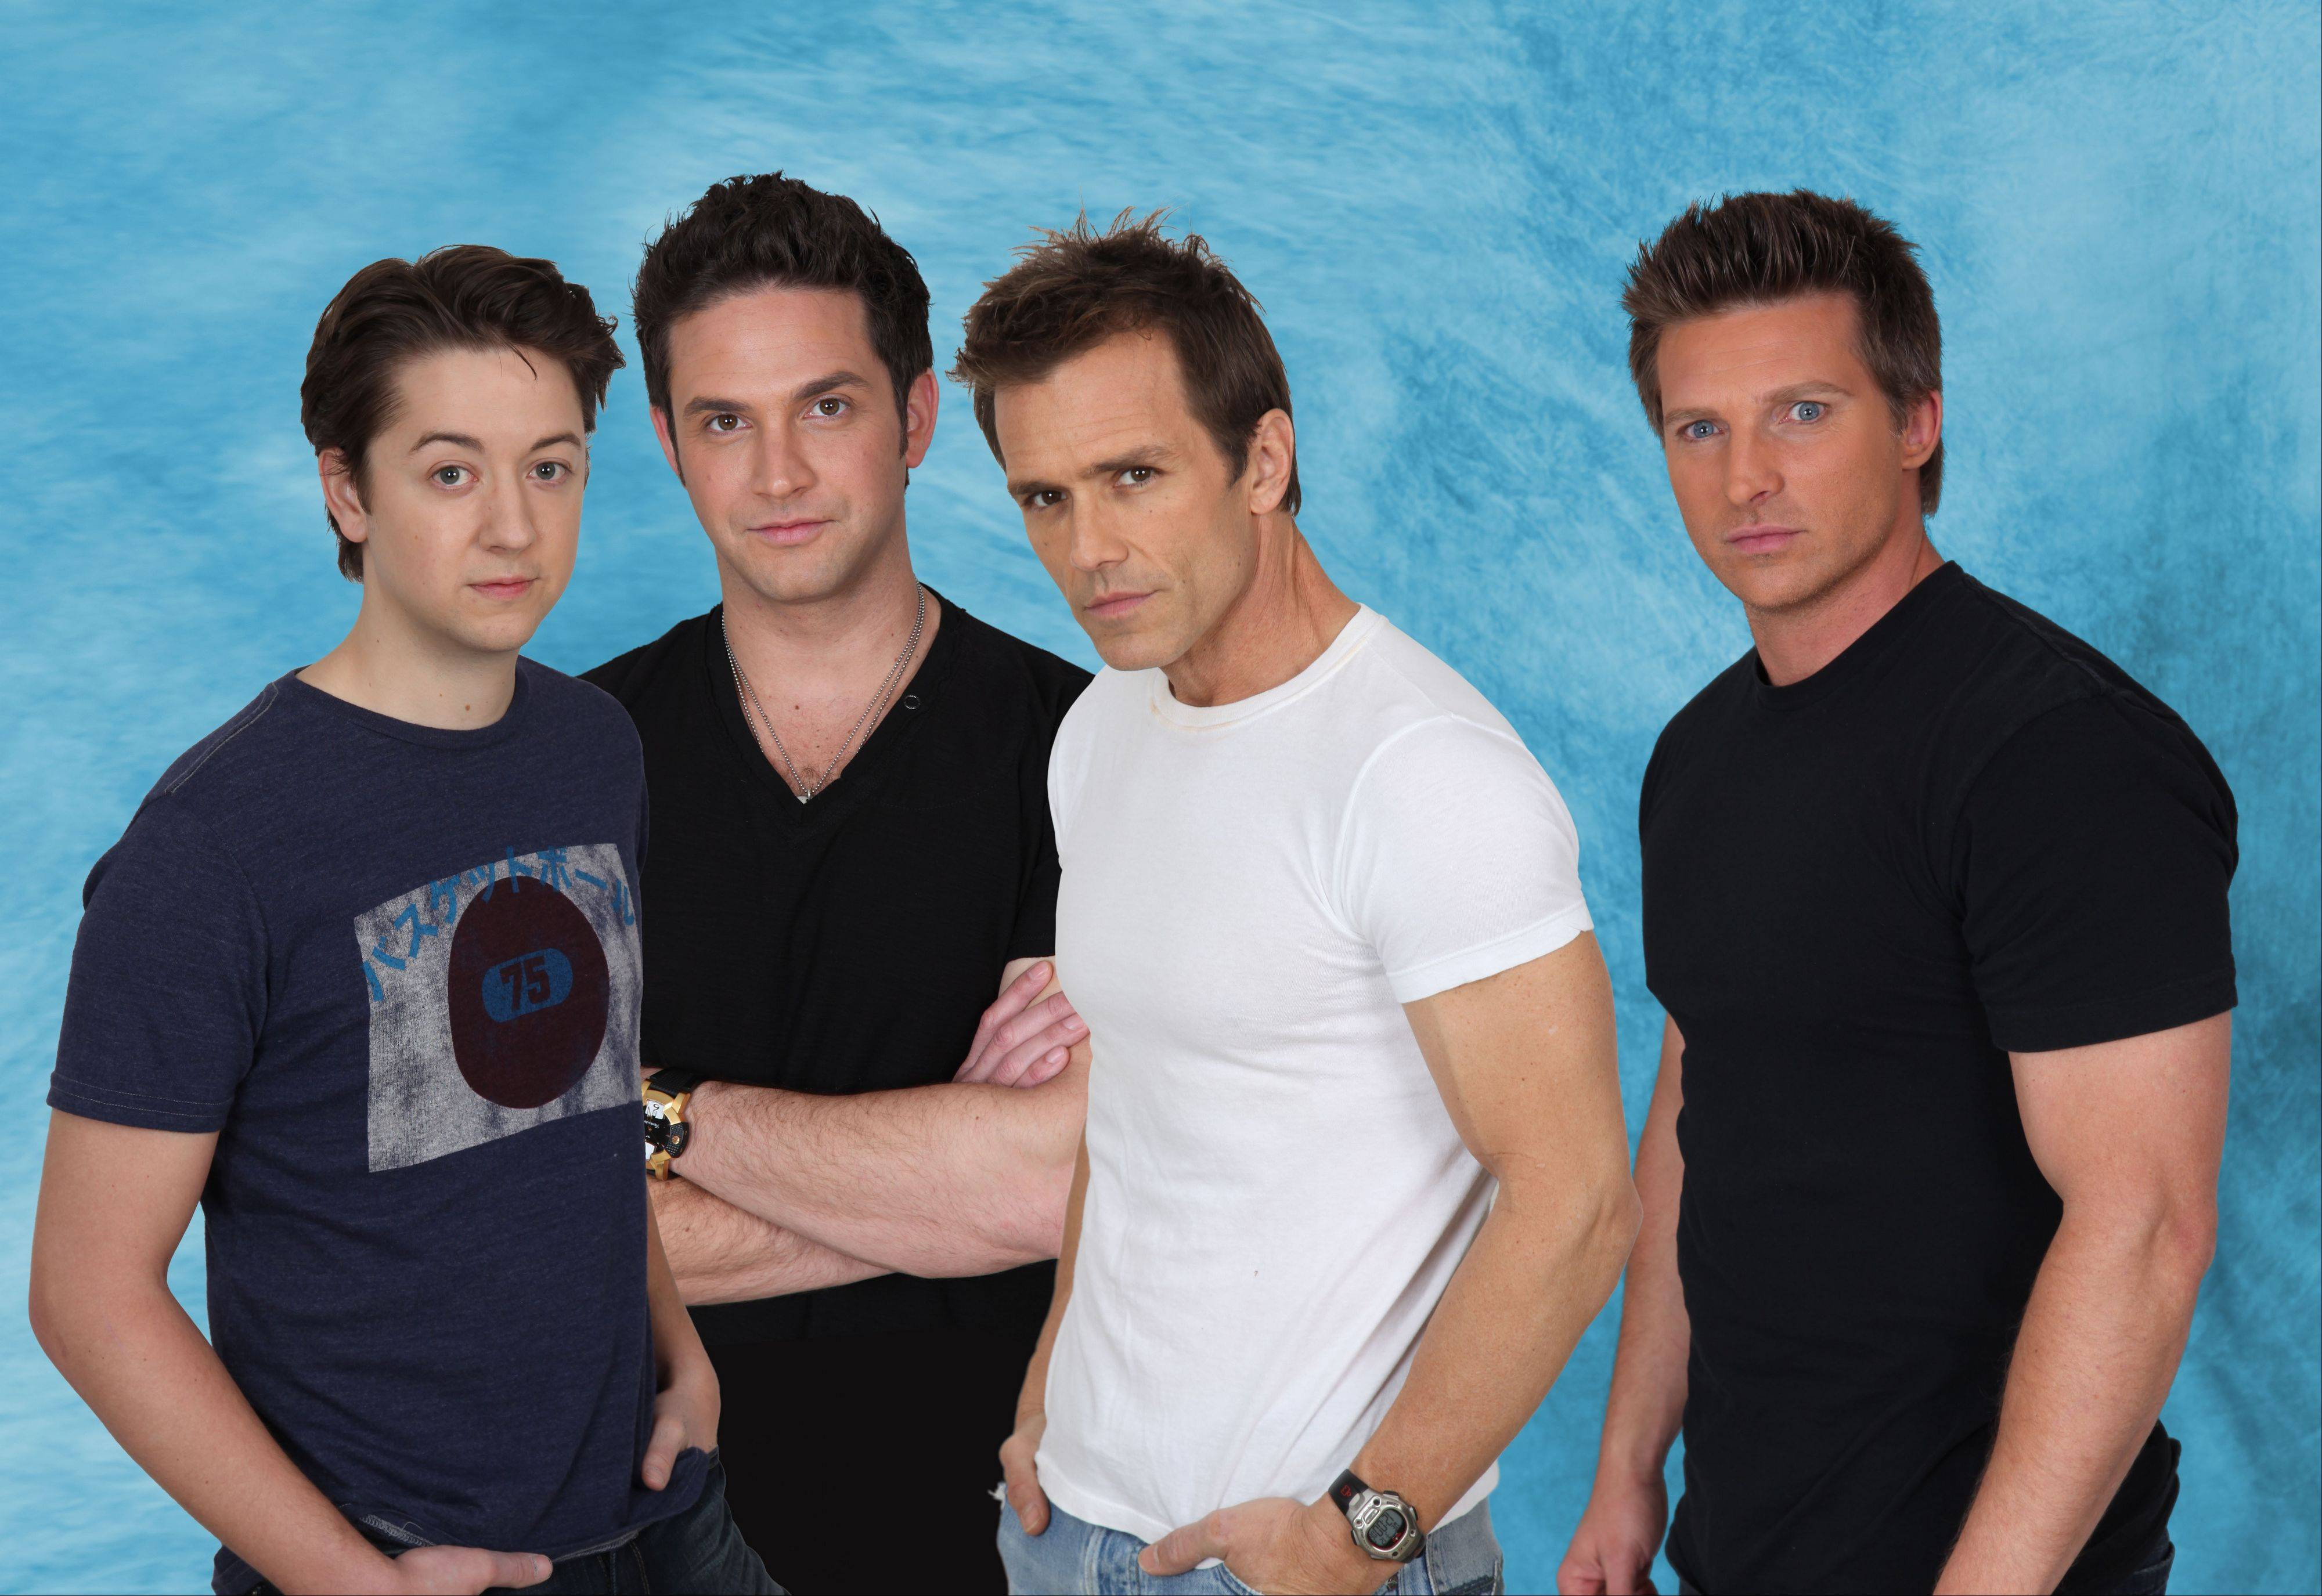 """General Hospital"" stars Bradford Anderson, left, Brandon Barash, Scott Reeves and Steve Burton perform together as Port Chuck at Pheasant Run Resort in St. Charles."